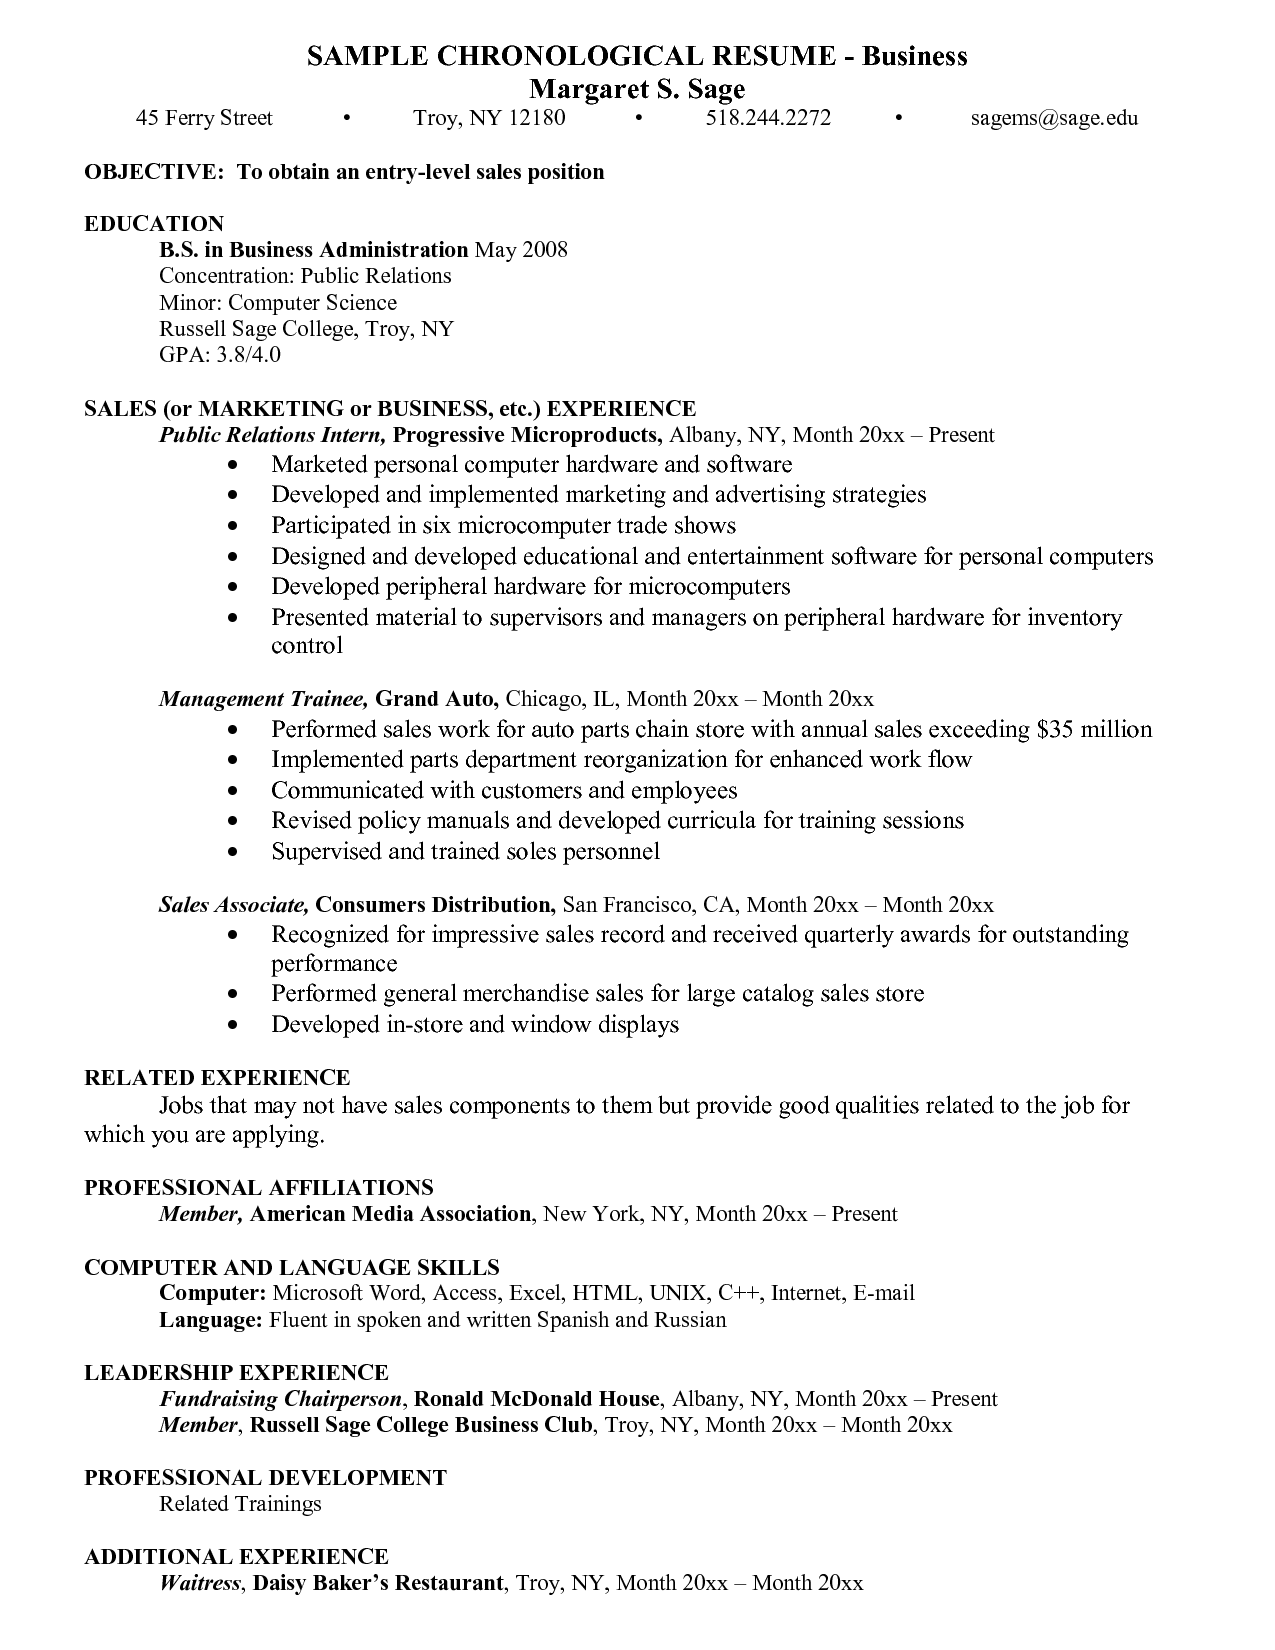 free chronological resume template     resumecareer info  free